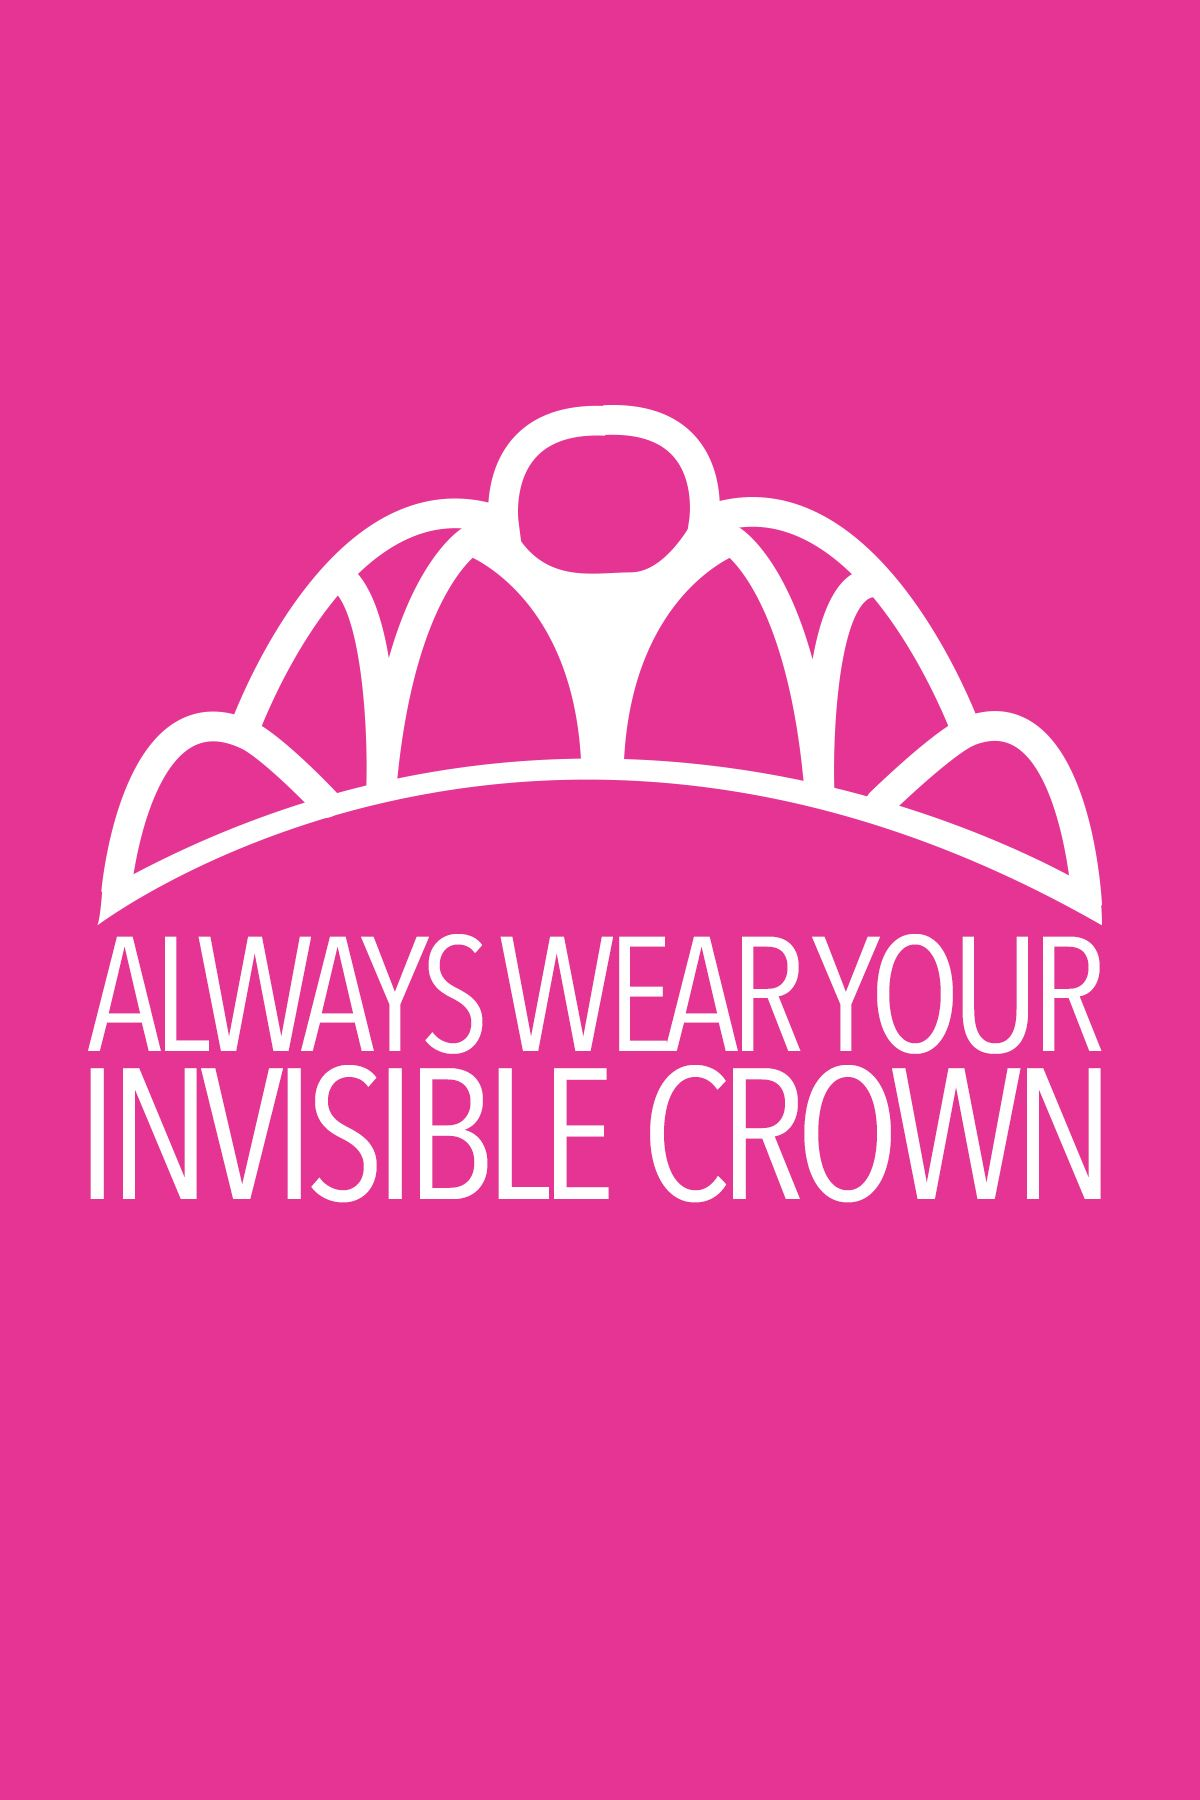 always wear your invisible crown! #promgirl247 [LS: graphic, simple, iconic / positive]